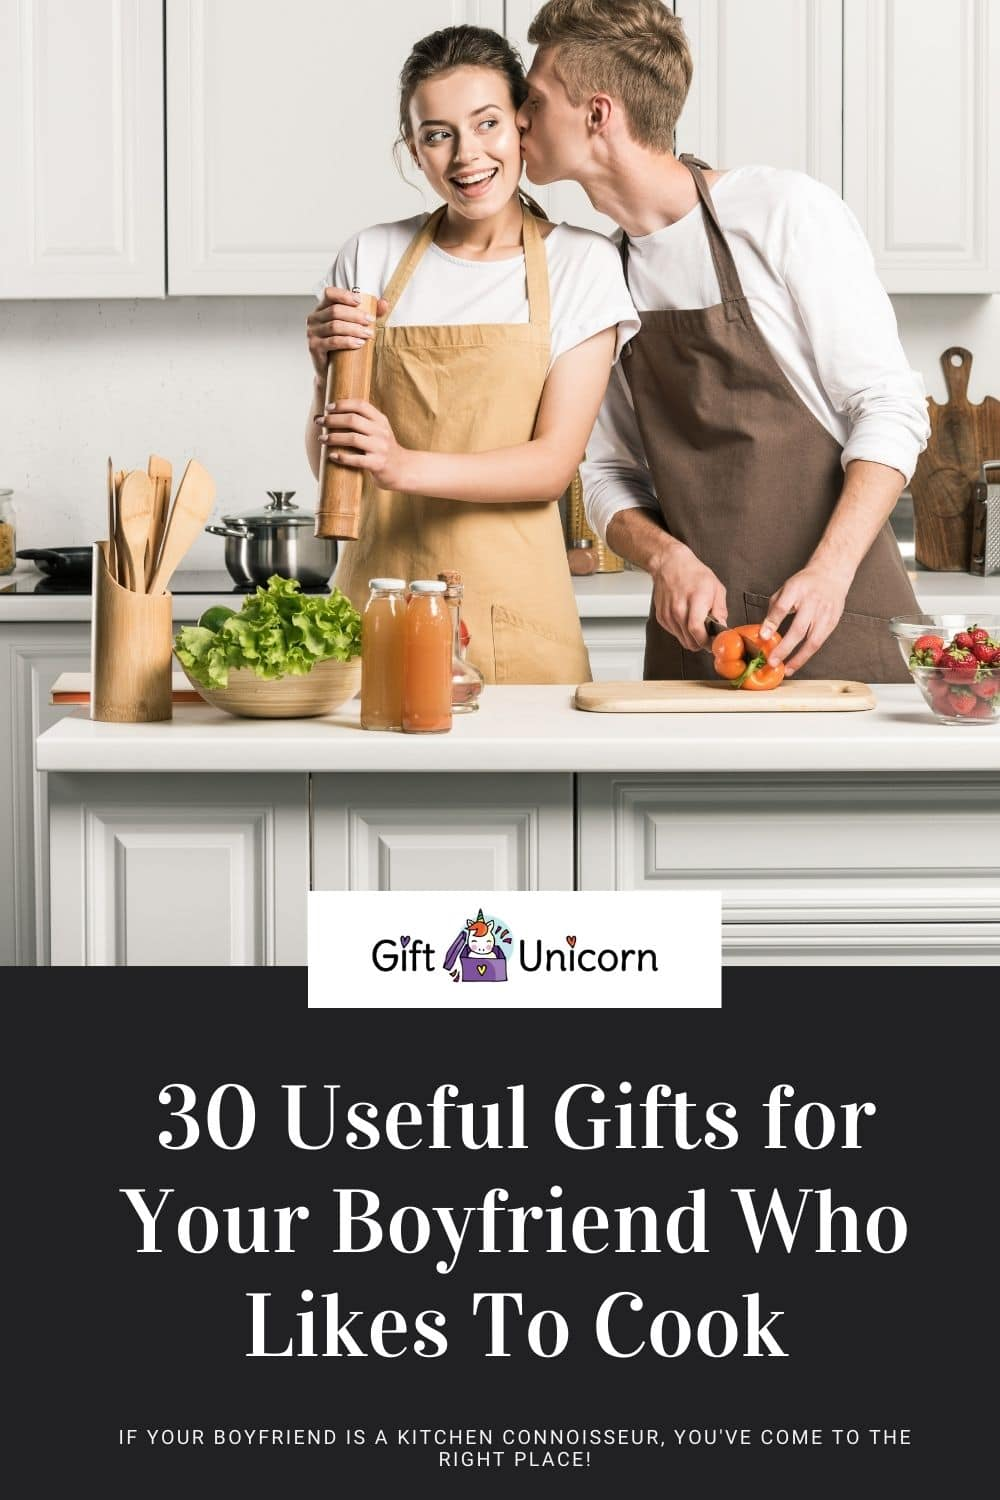 30 Useful gifts for your boyfriend who likes to cook